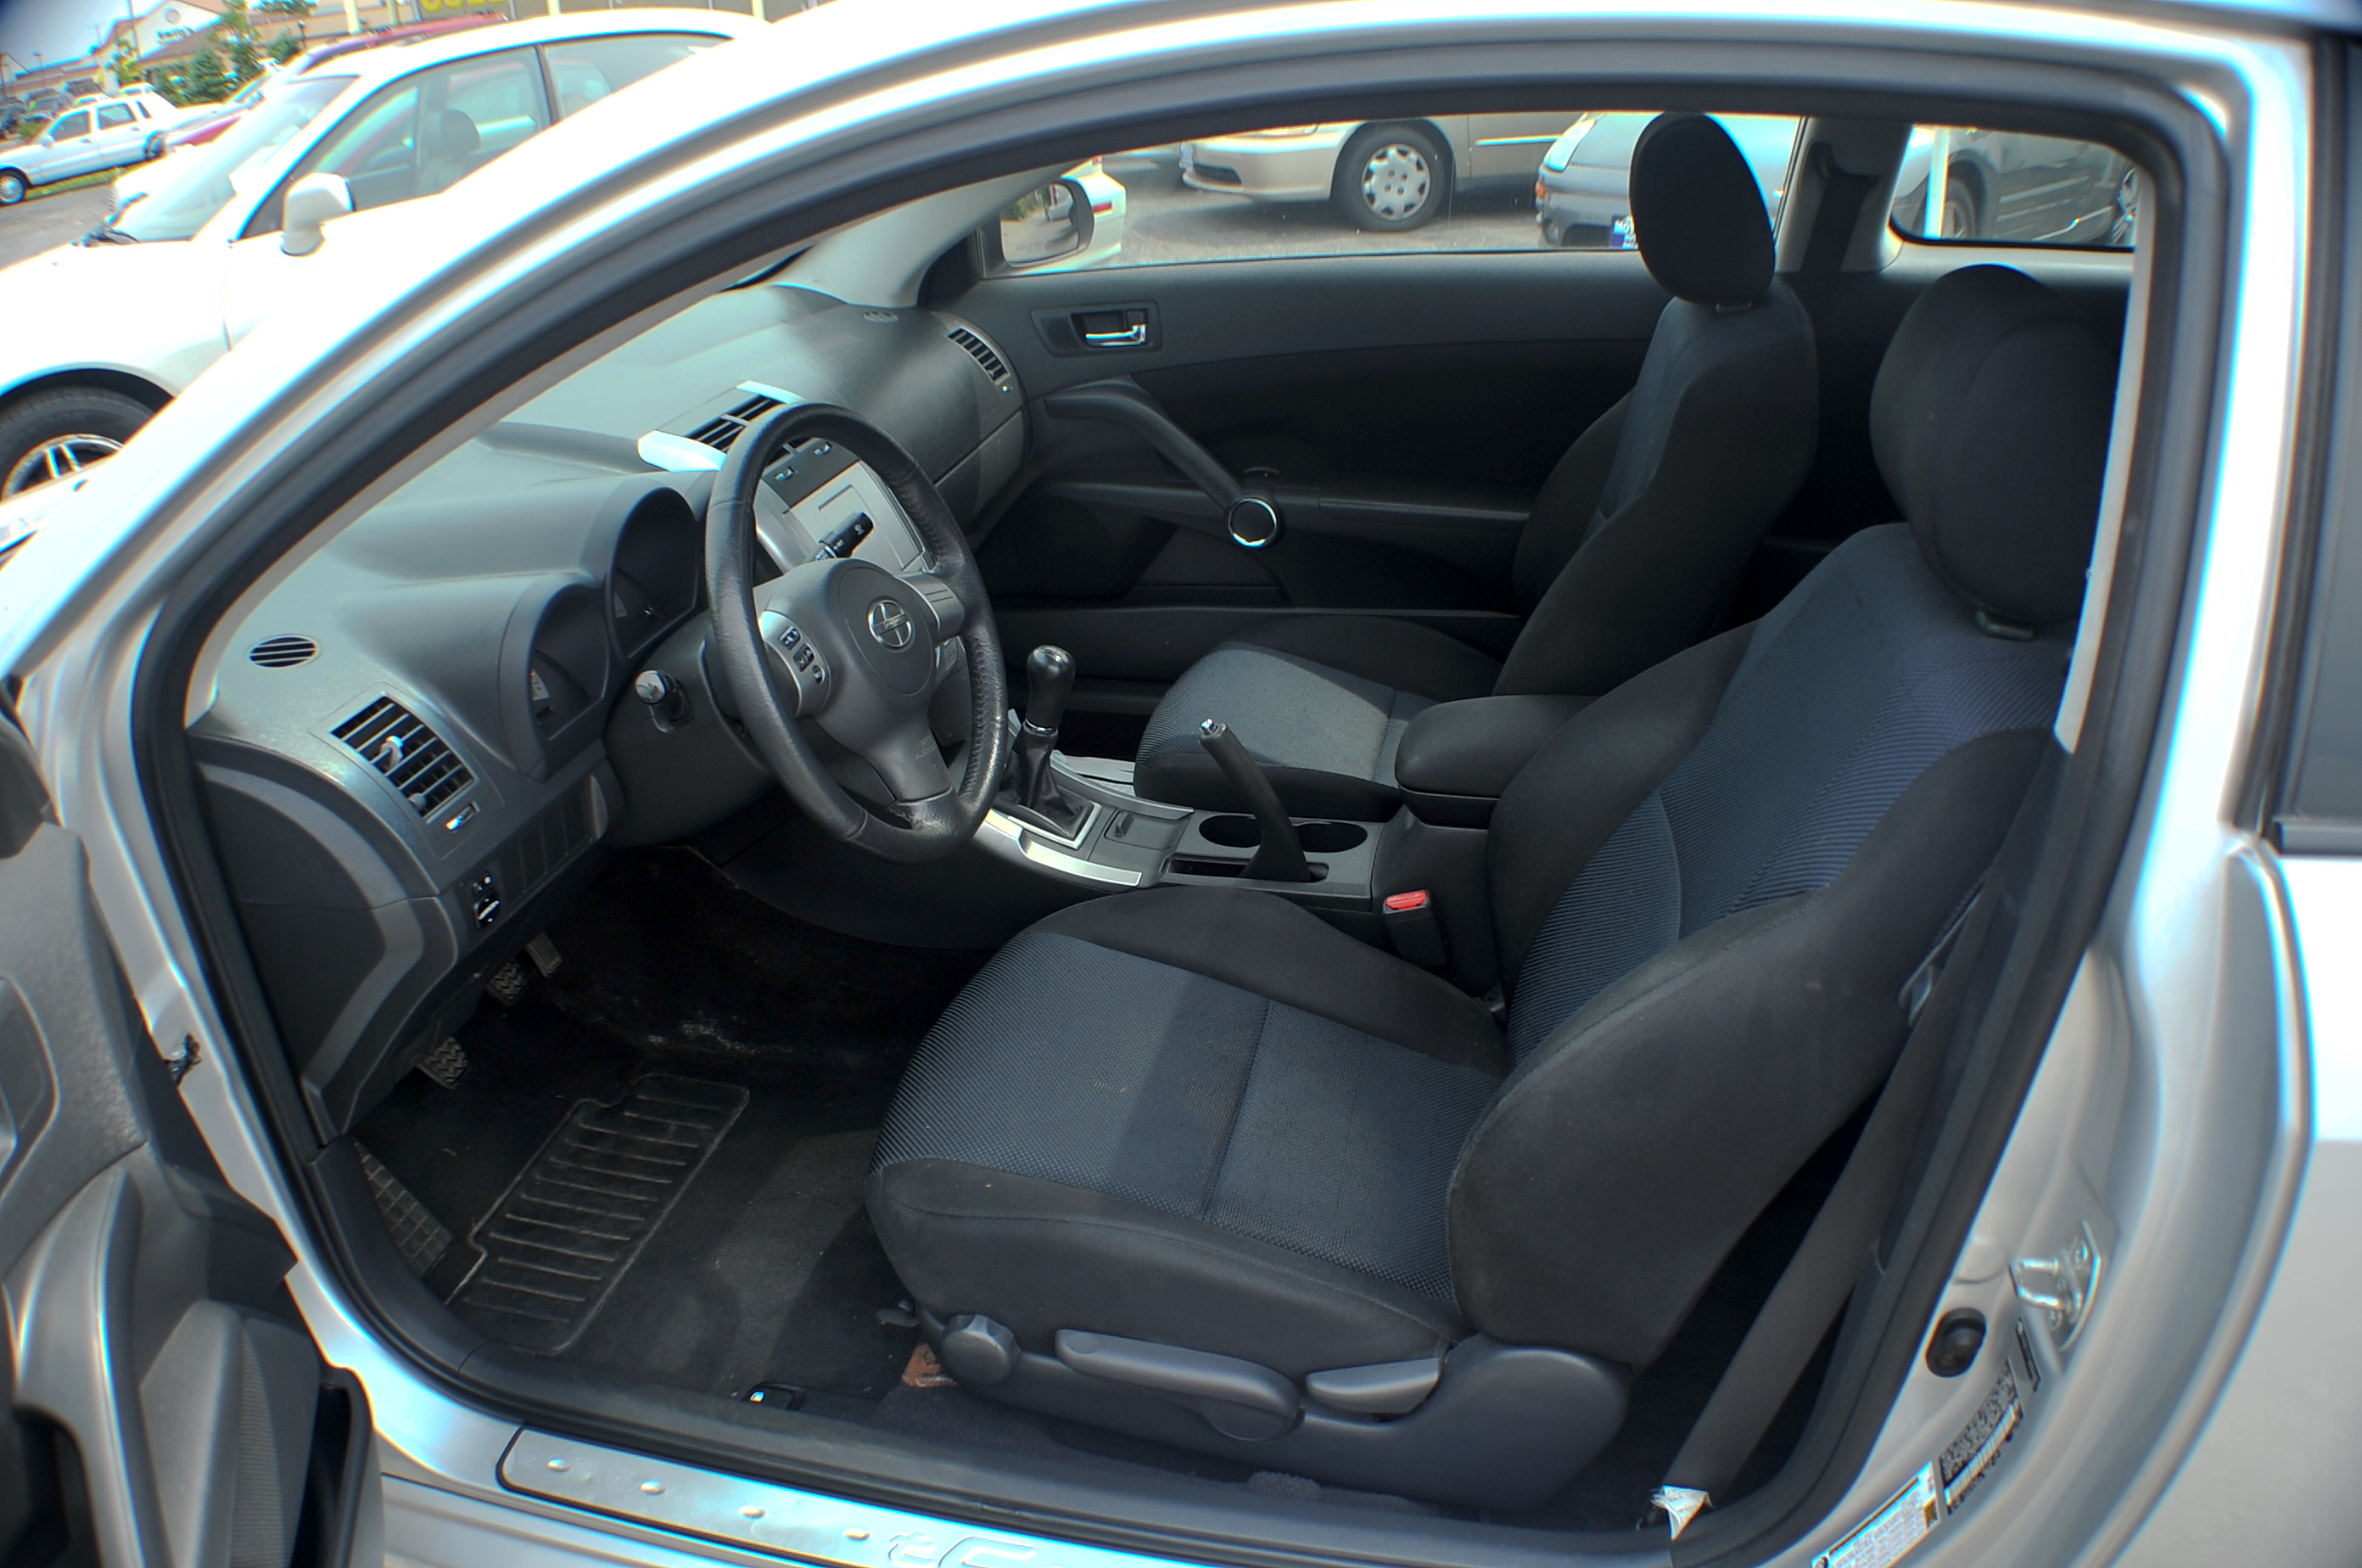 2006 Scion TC Manual Shift Coupe Used Car Sale Mchenry Wadsworth